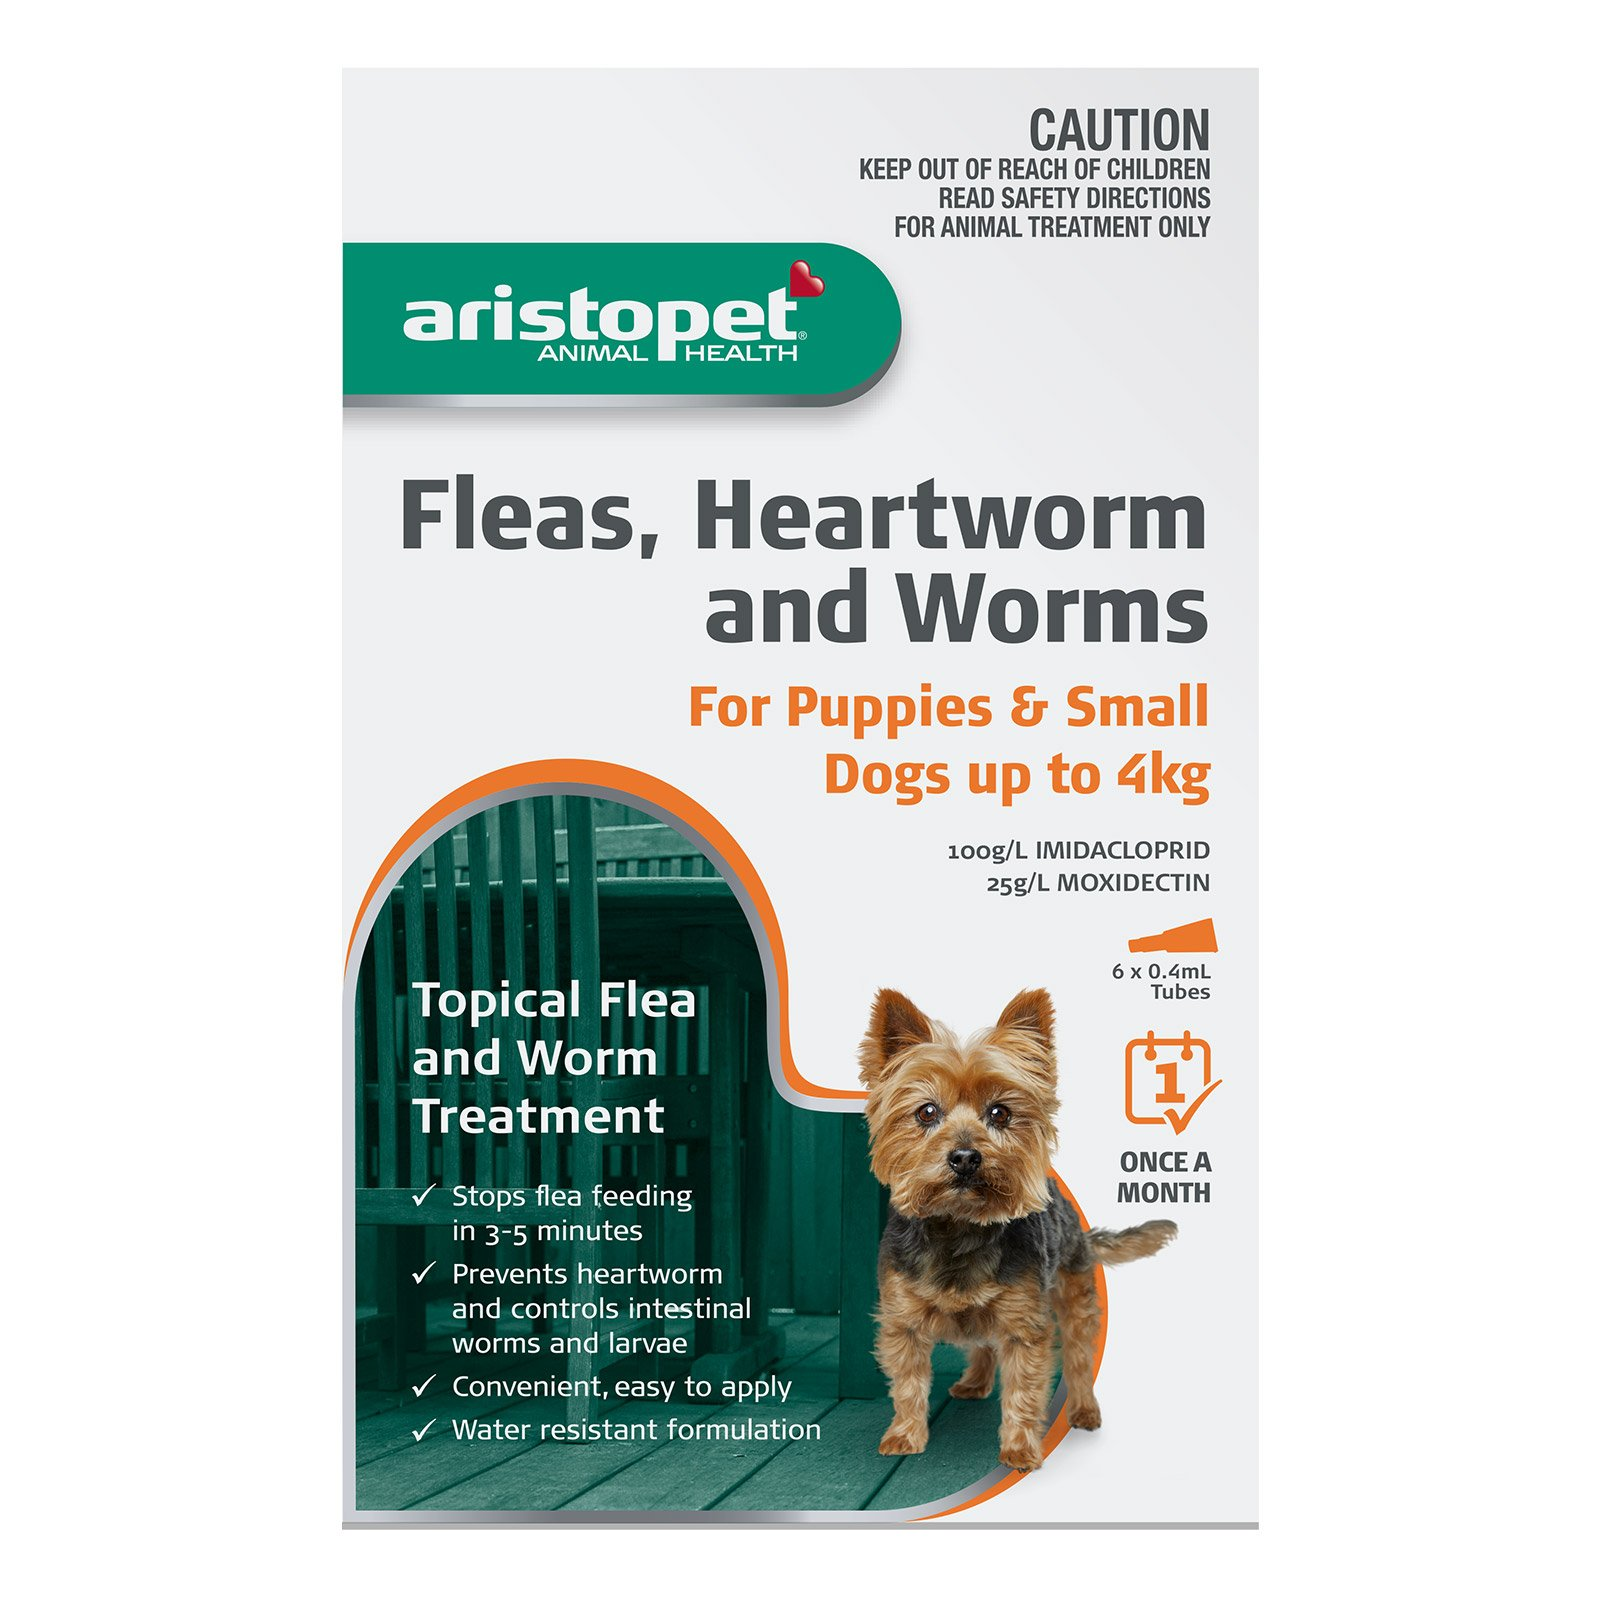 aristopet-treatment-for-puppies-and-small-dogs-up-to-4kg-6pack_04192021_013907.jpg